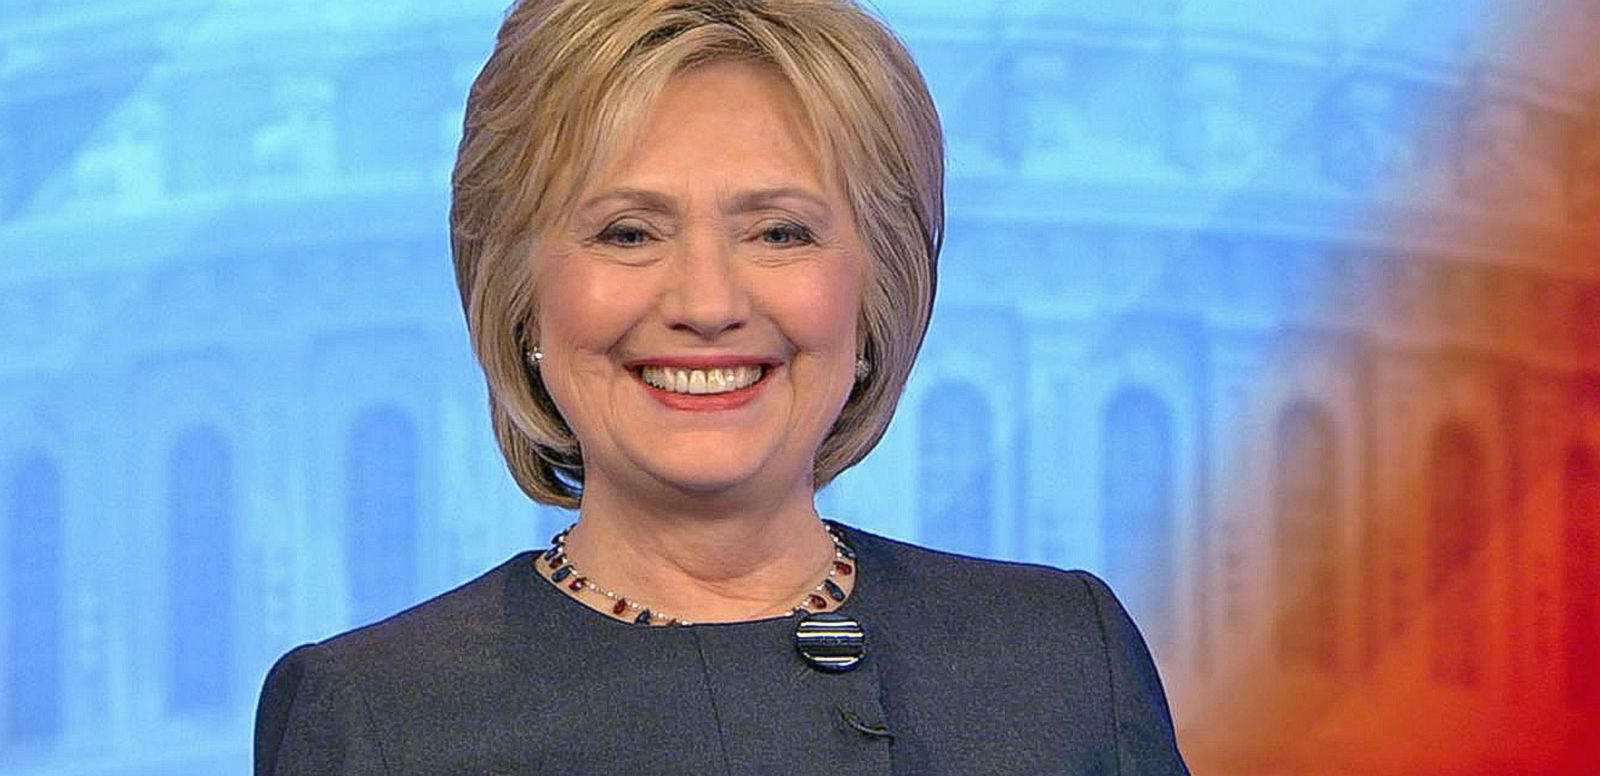 VIDEO: Hillary Clinton Speaks Out on SOTU, Iowa Caucuses